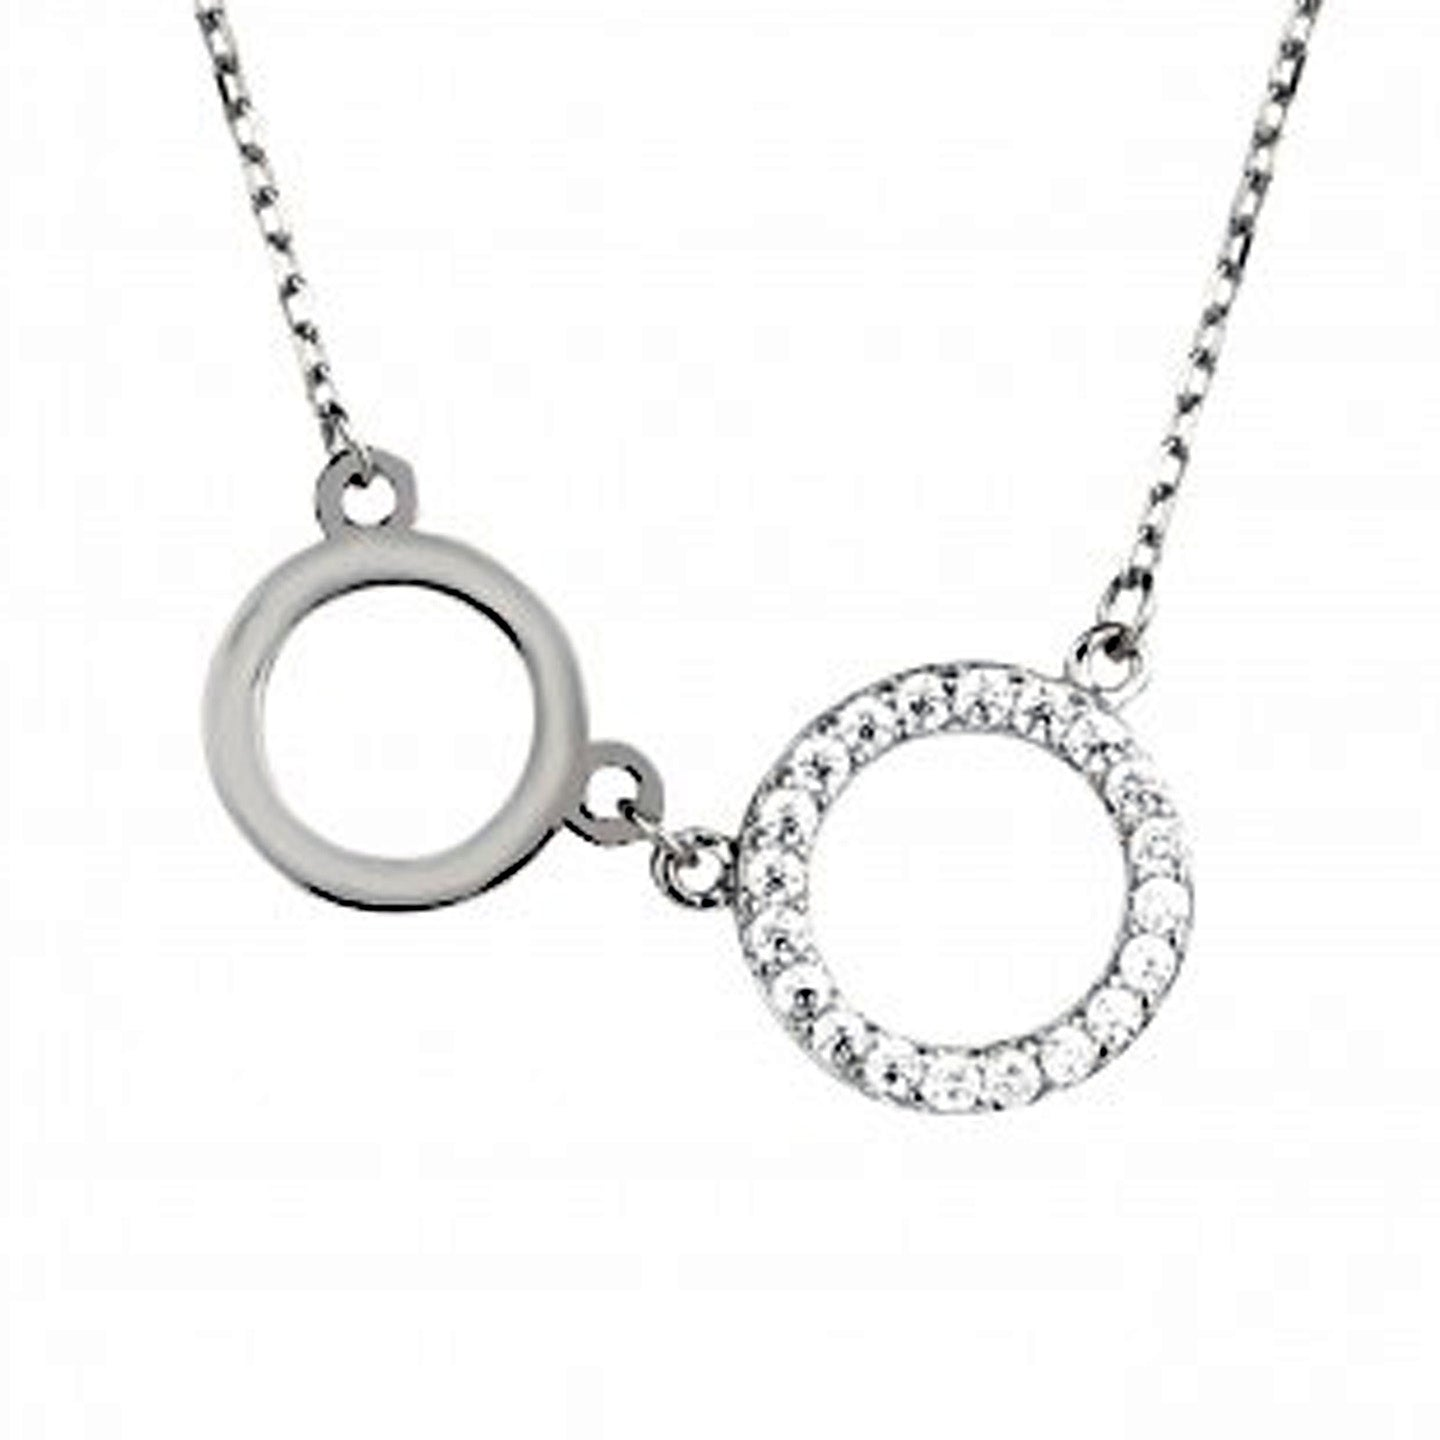 shop eternity necklace sveaas silver large triple tilly jewellery ring